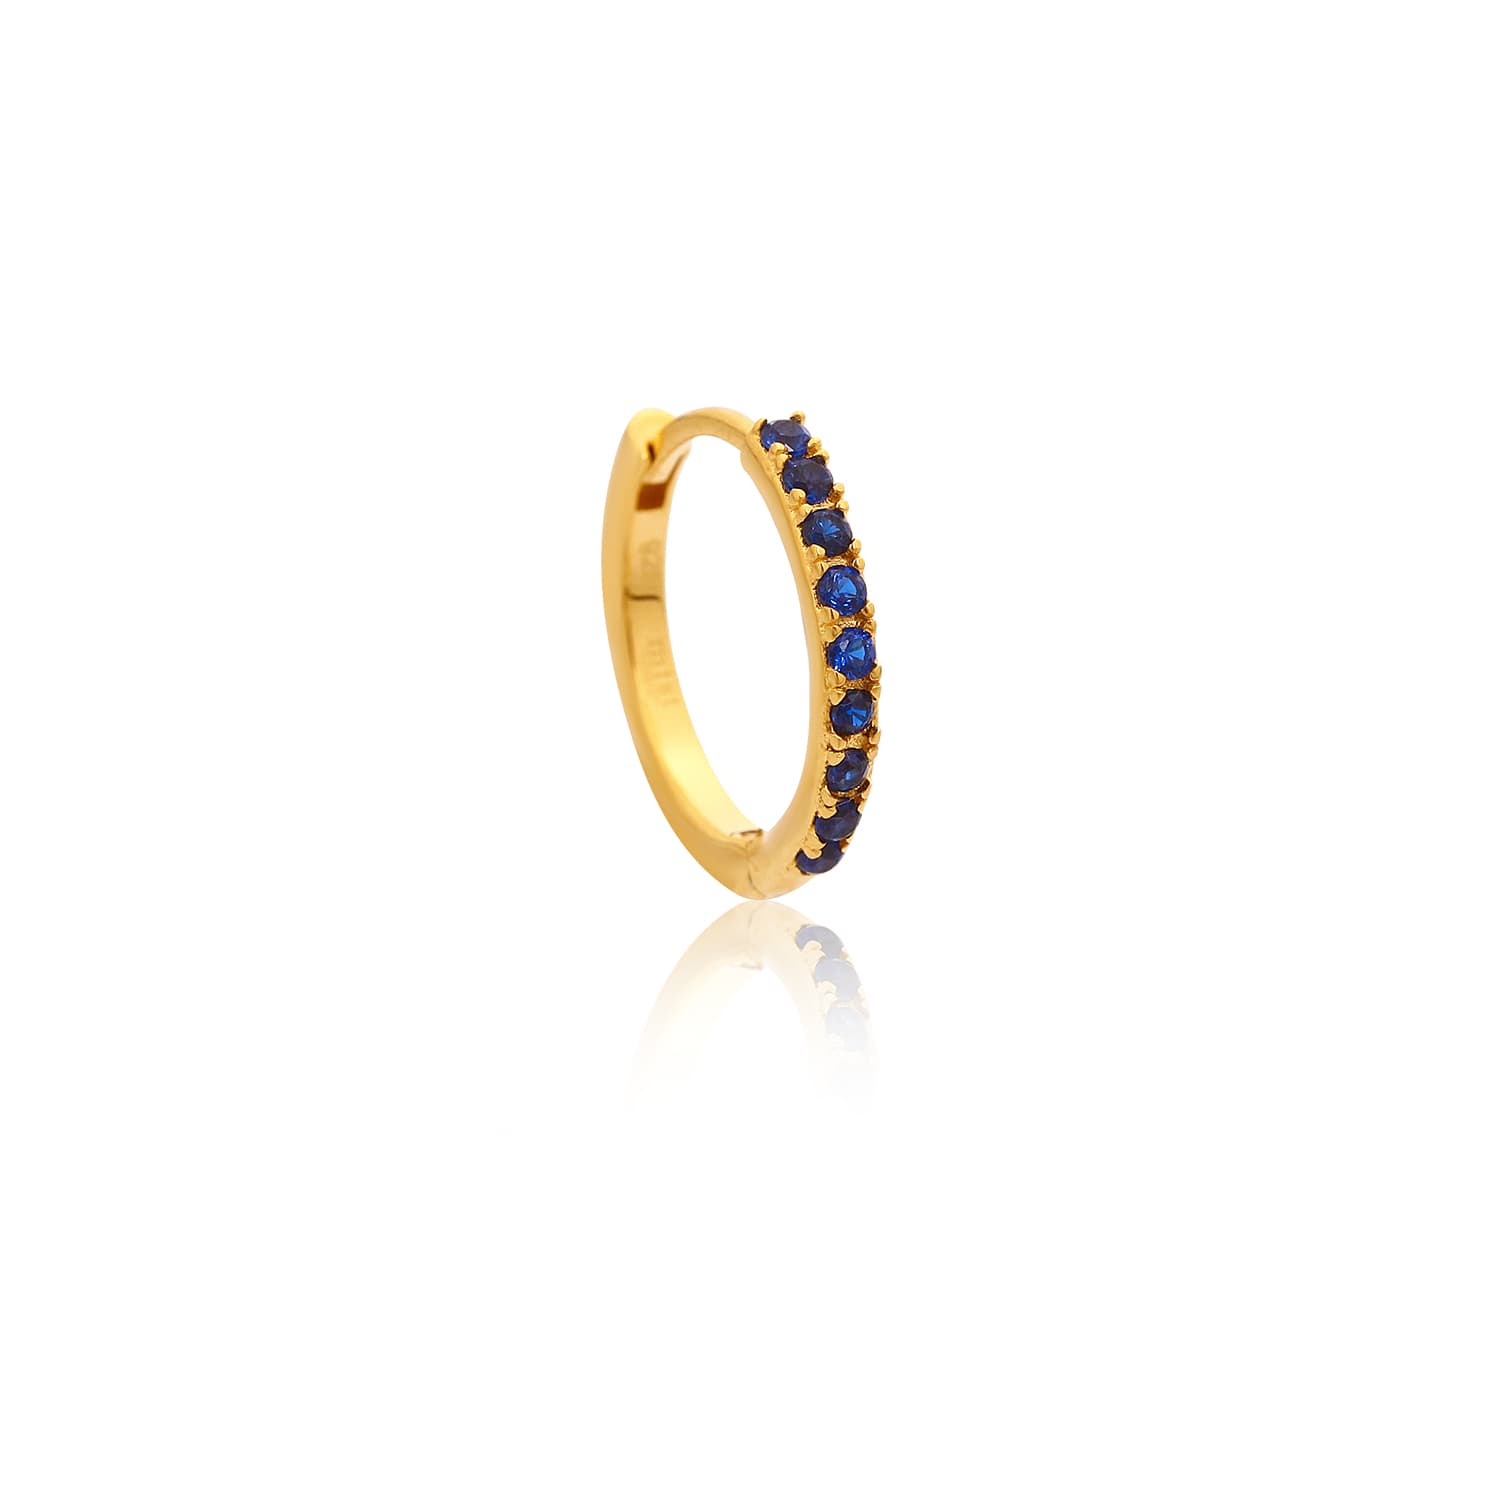 12MM CHARM RING EARRINGS DARK BLUE